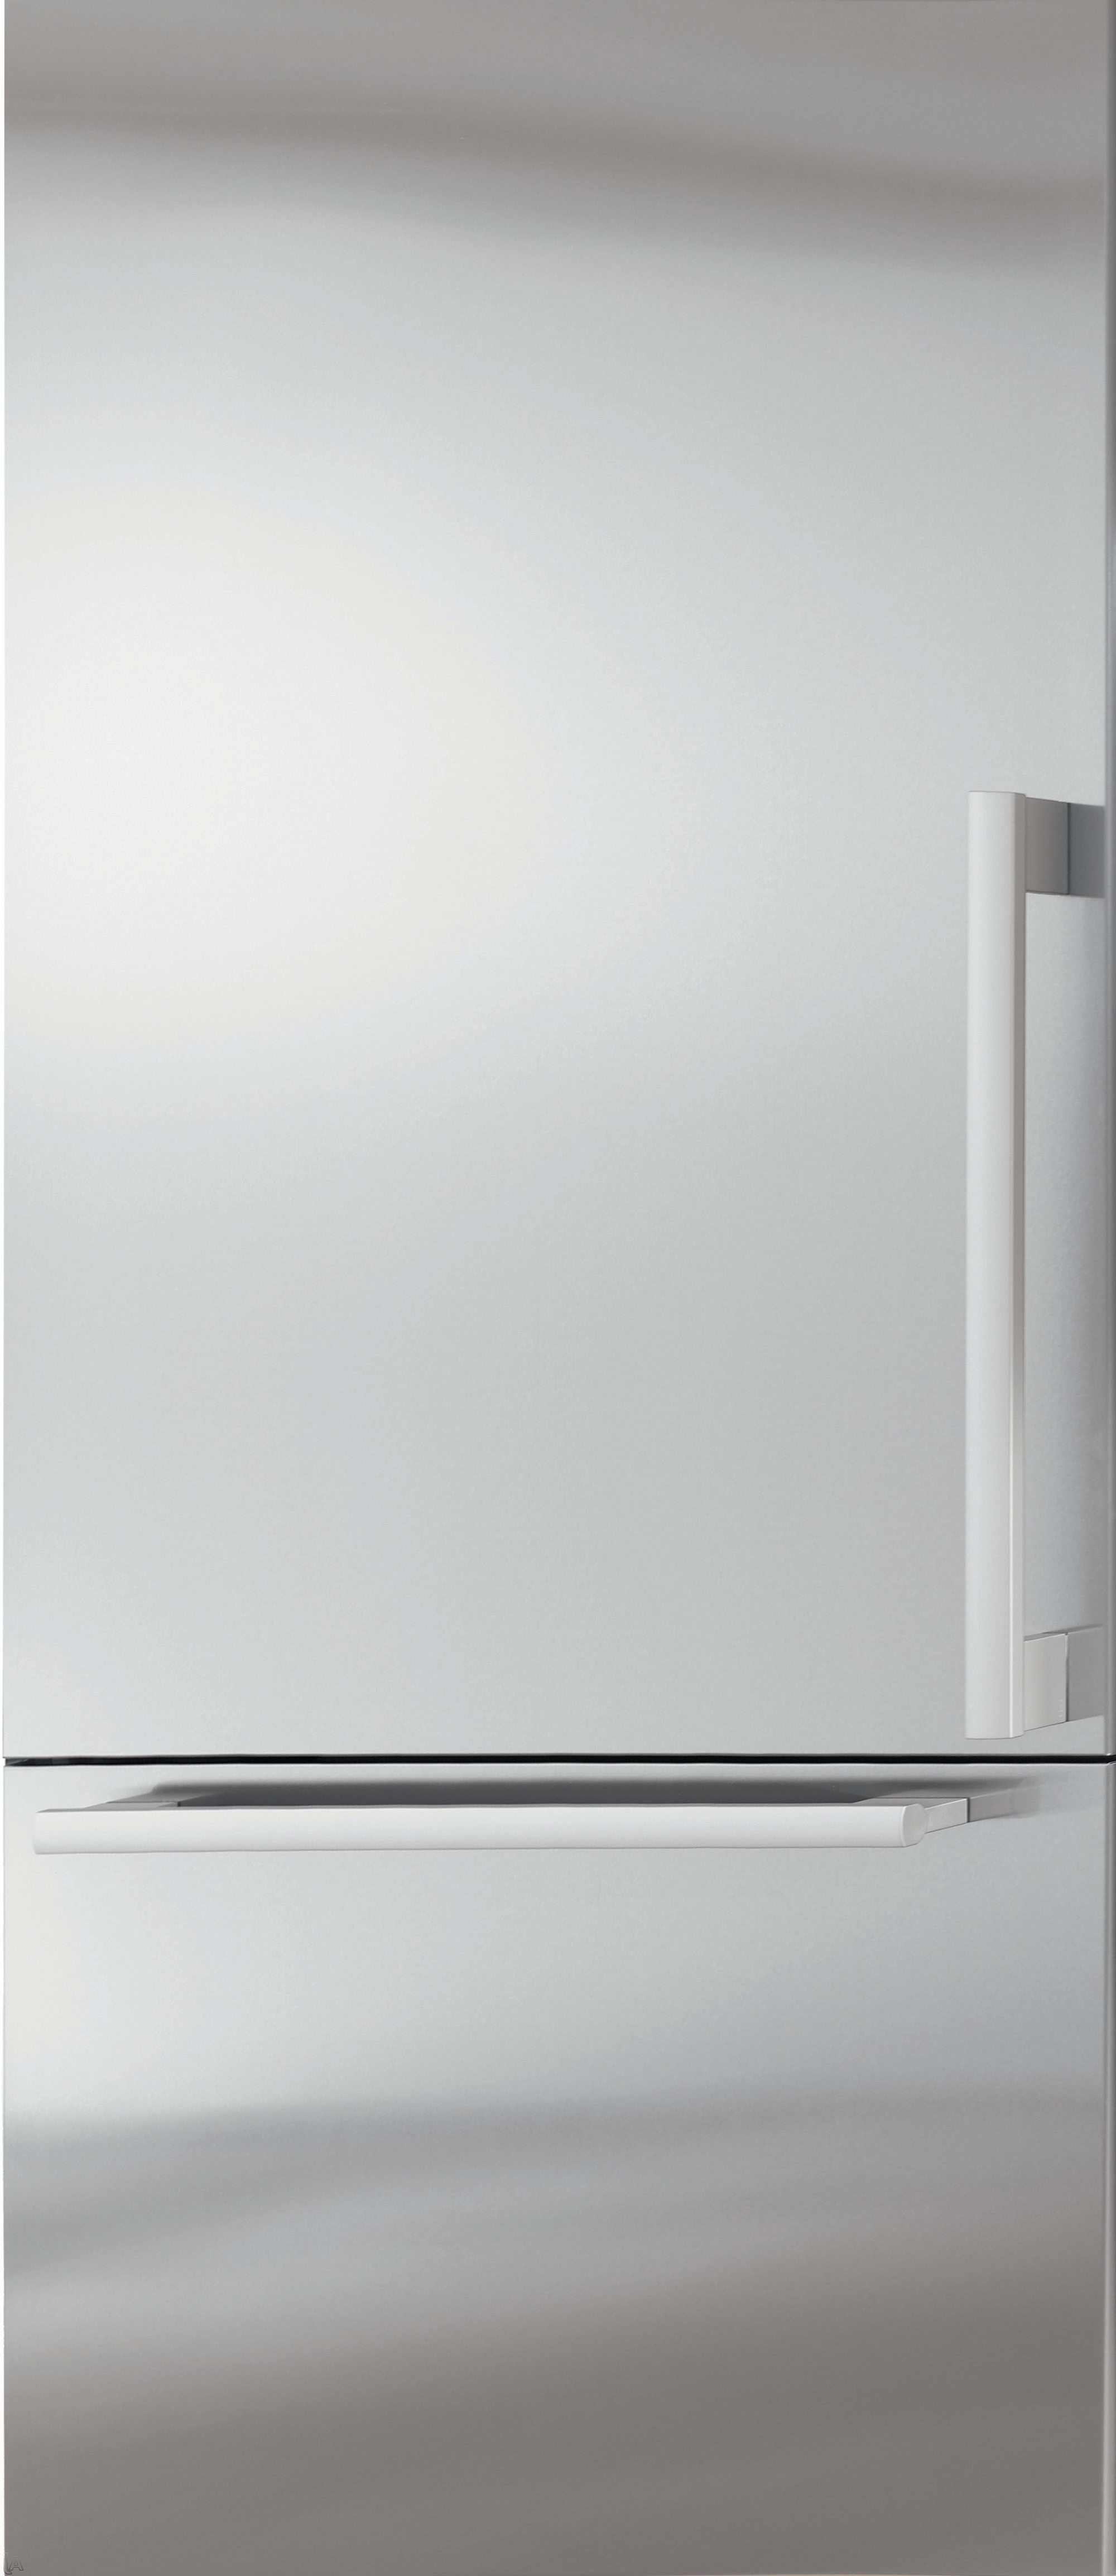 Miele Kf1913vi 36 Inch Built In Bottom Freezer Refrigerator With 18